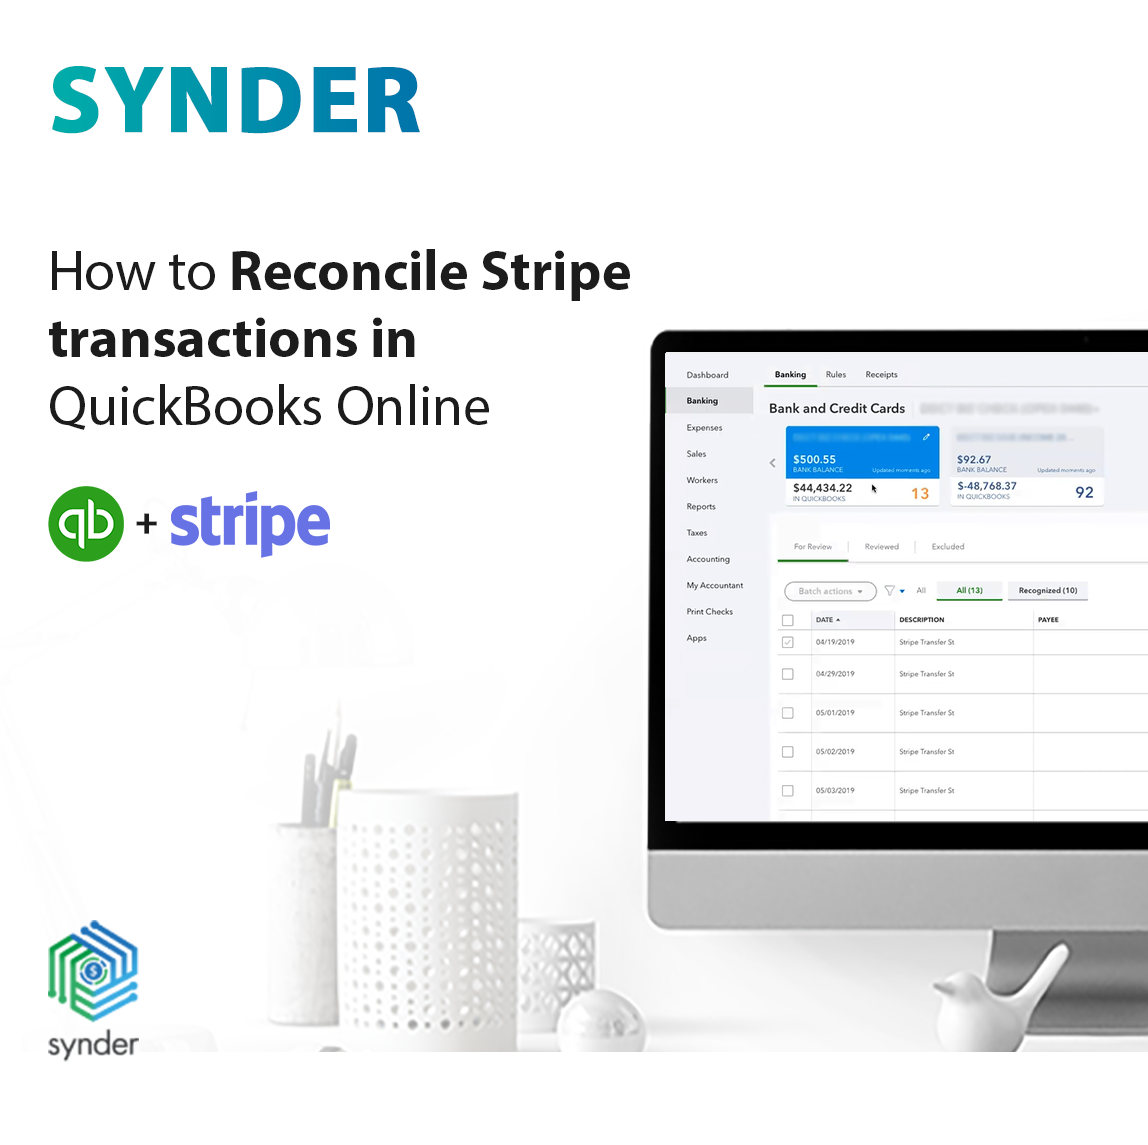 Reconcile your Stripe transactions in QuickBooks